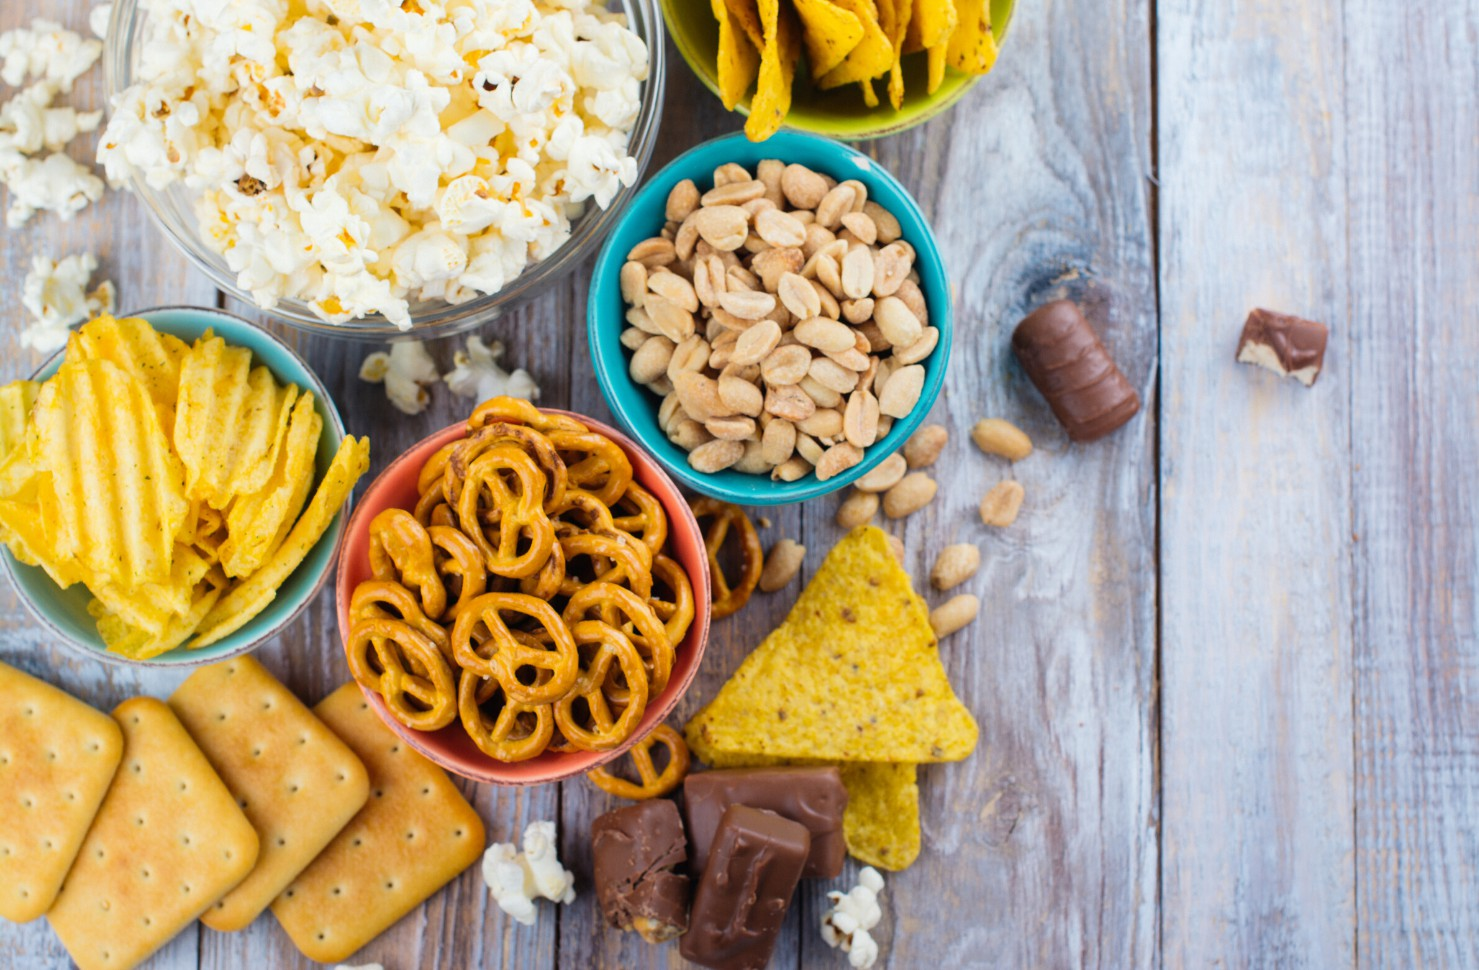 6 Snacking Tips in the age of COVID-19